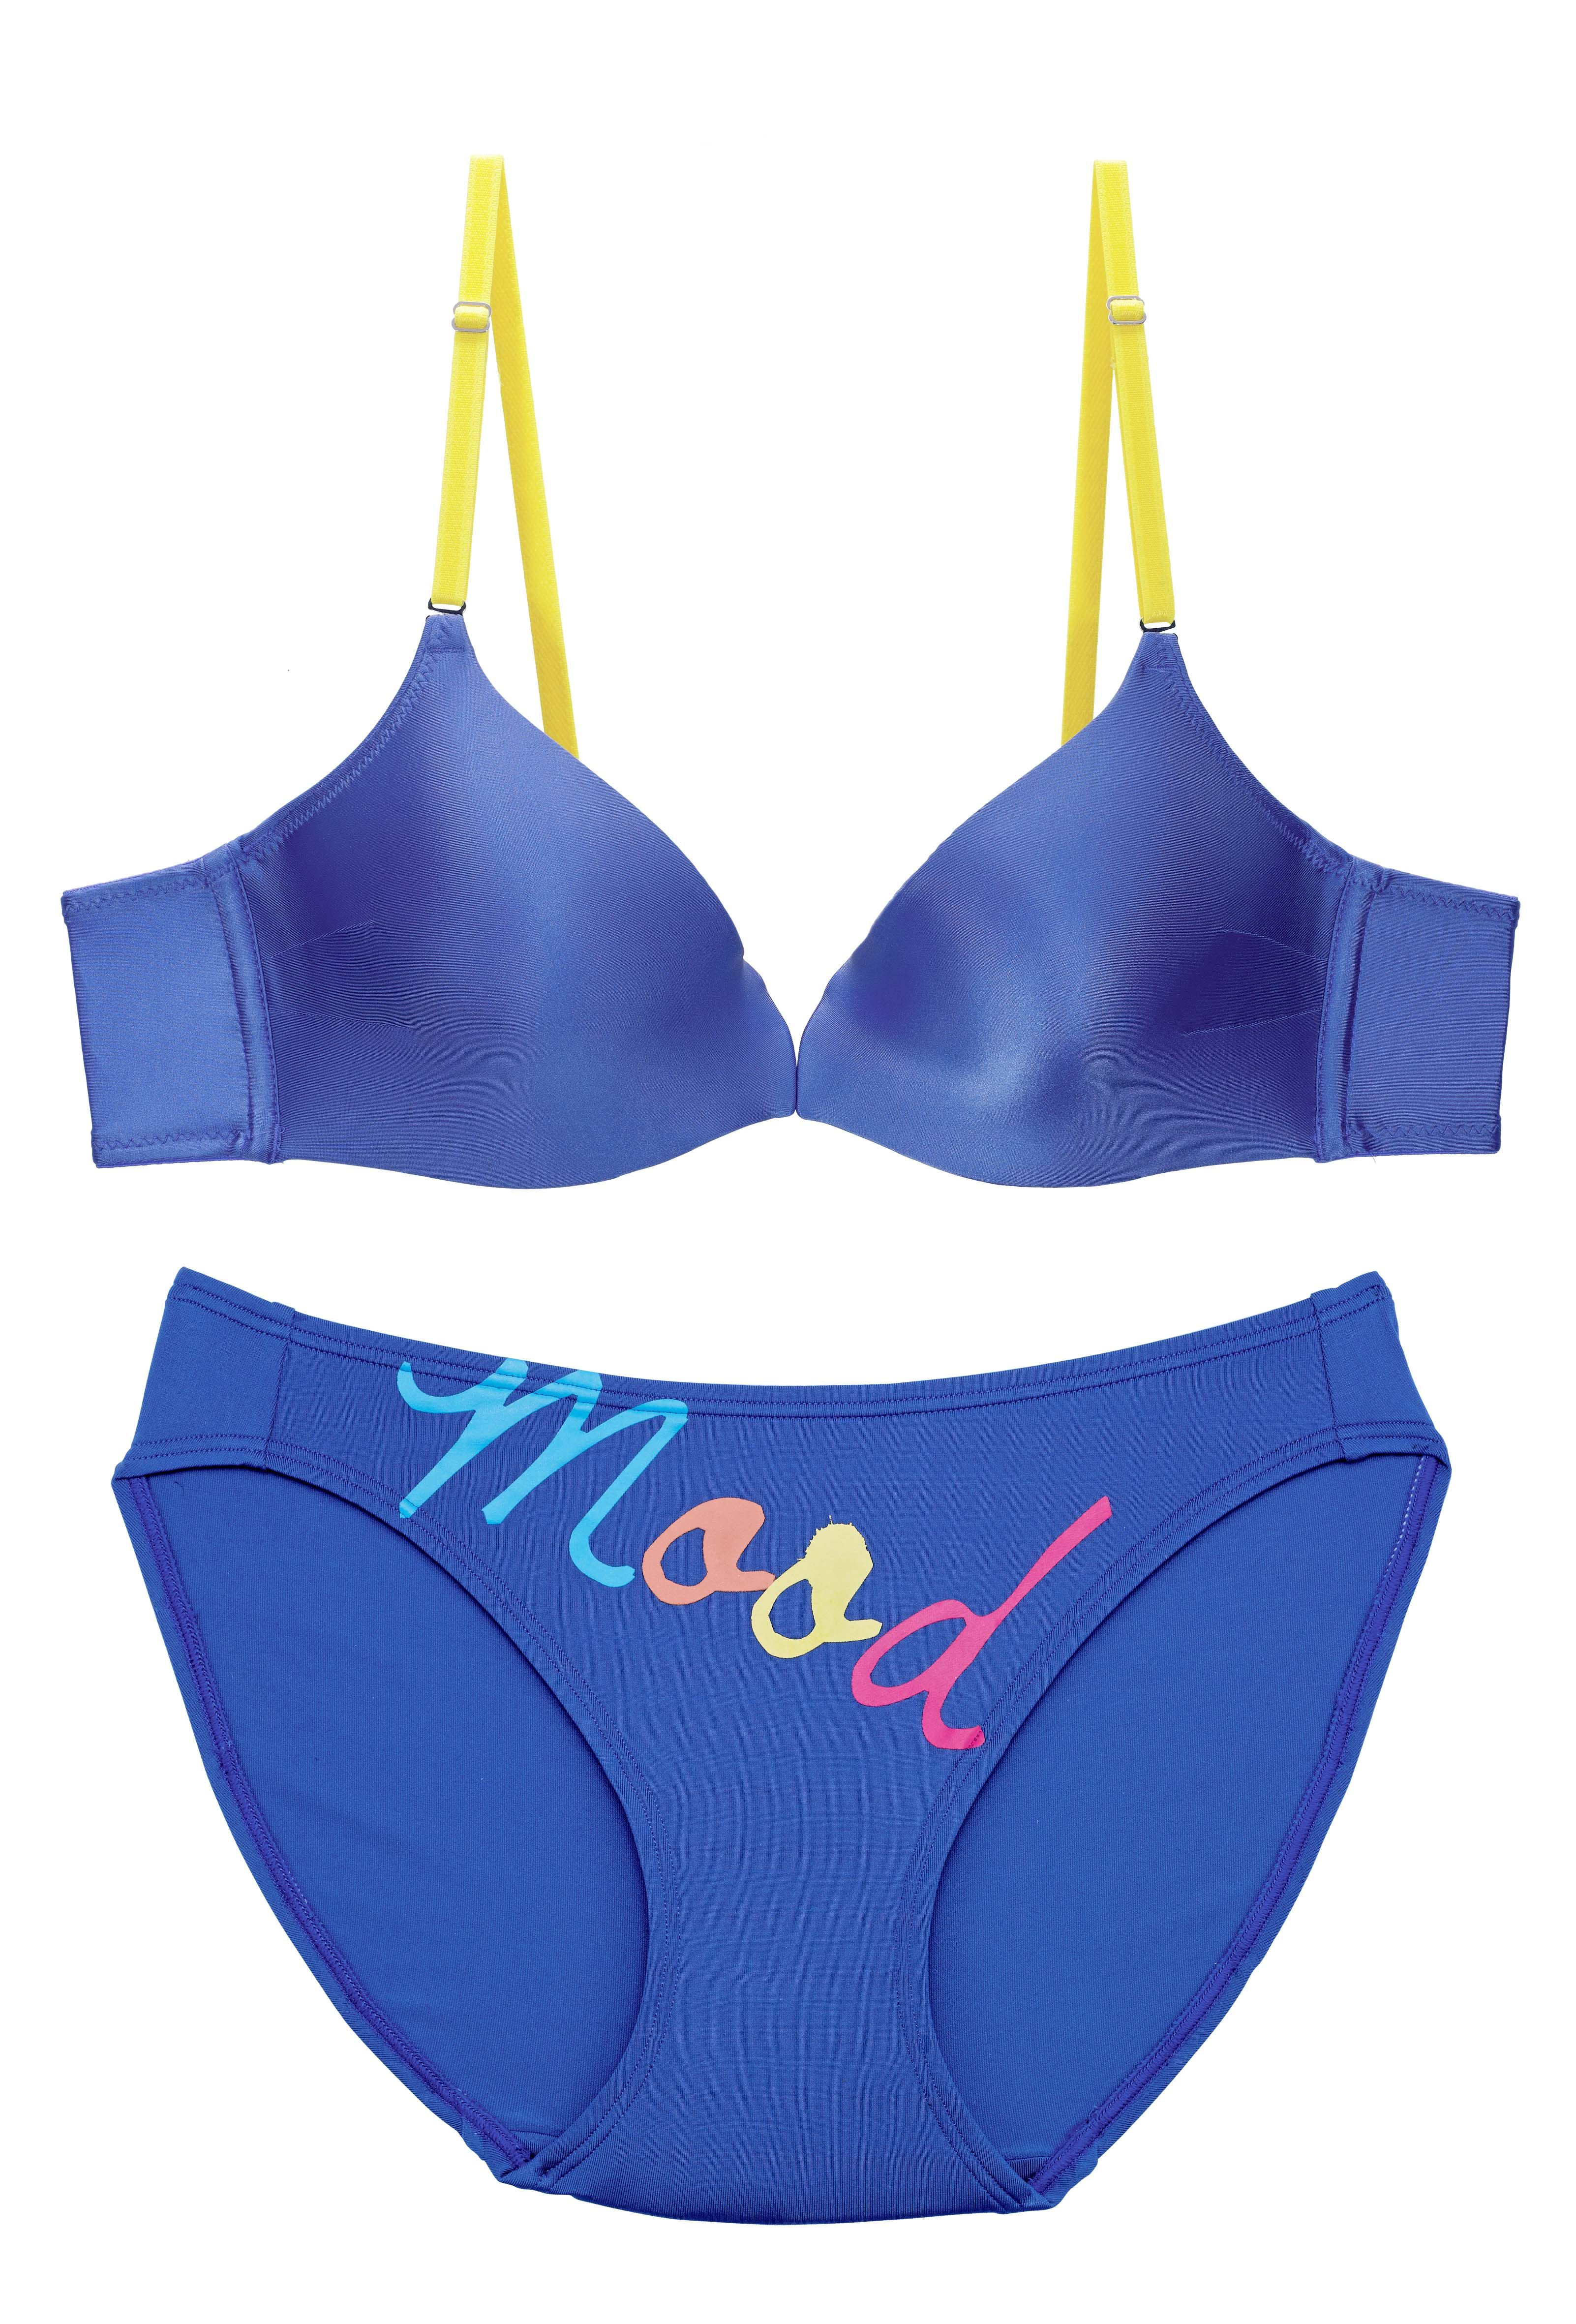 factory price search for best new style Switch Bra by Wacoal Mood | Mood [Boost-up] | Bra, Wacoal ...